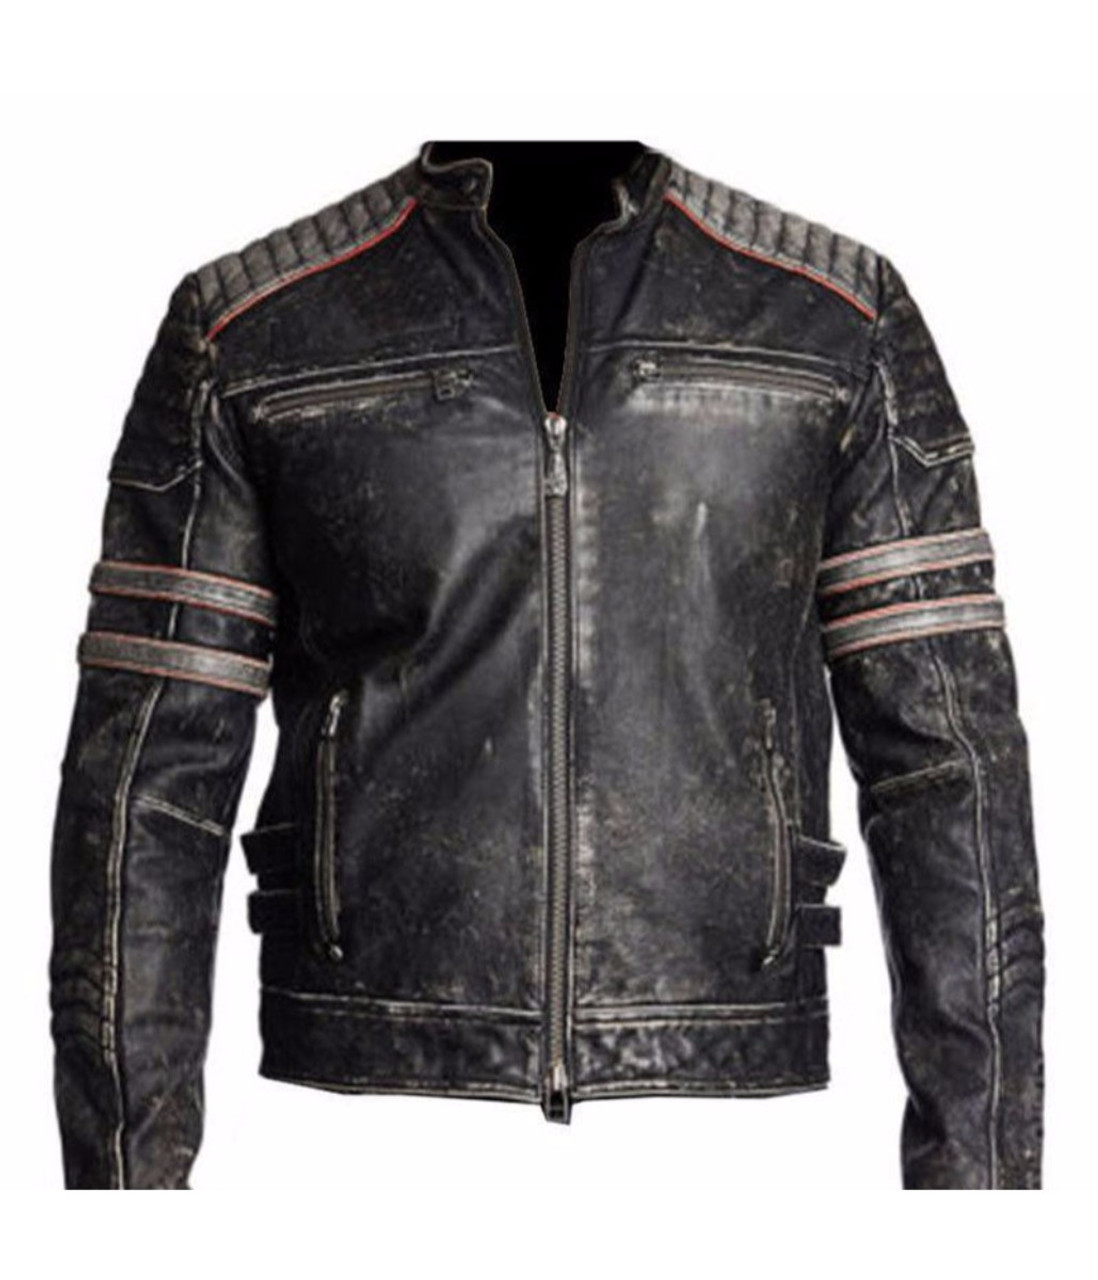 leather jacket motorcycle biker retro mens jackets distressed skin coat cafe racer xl wallet feather